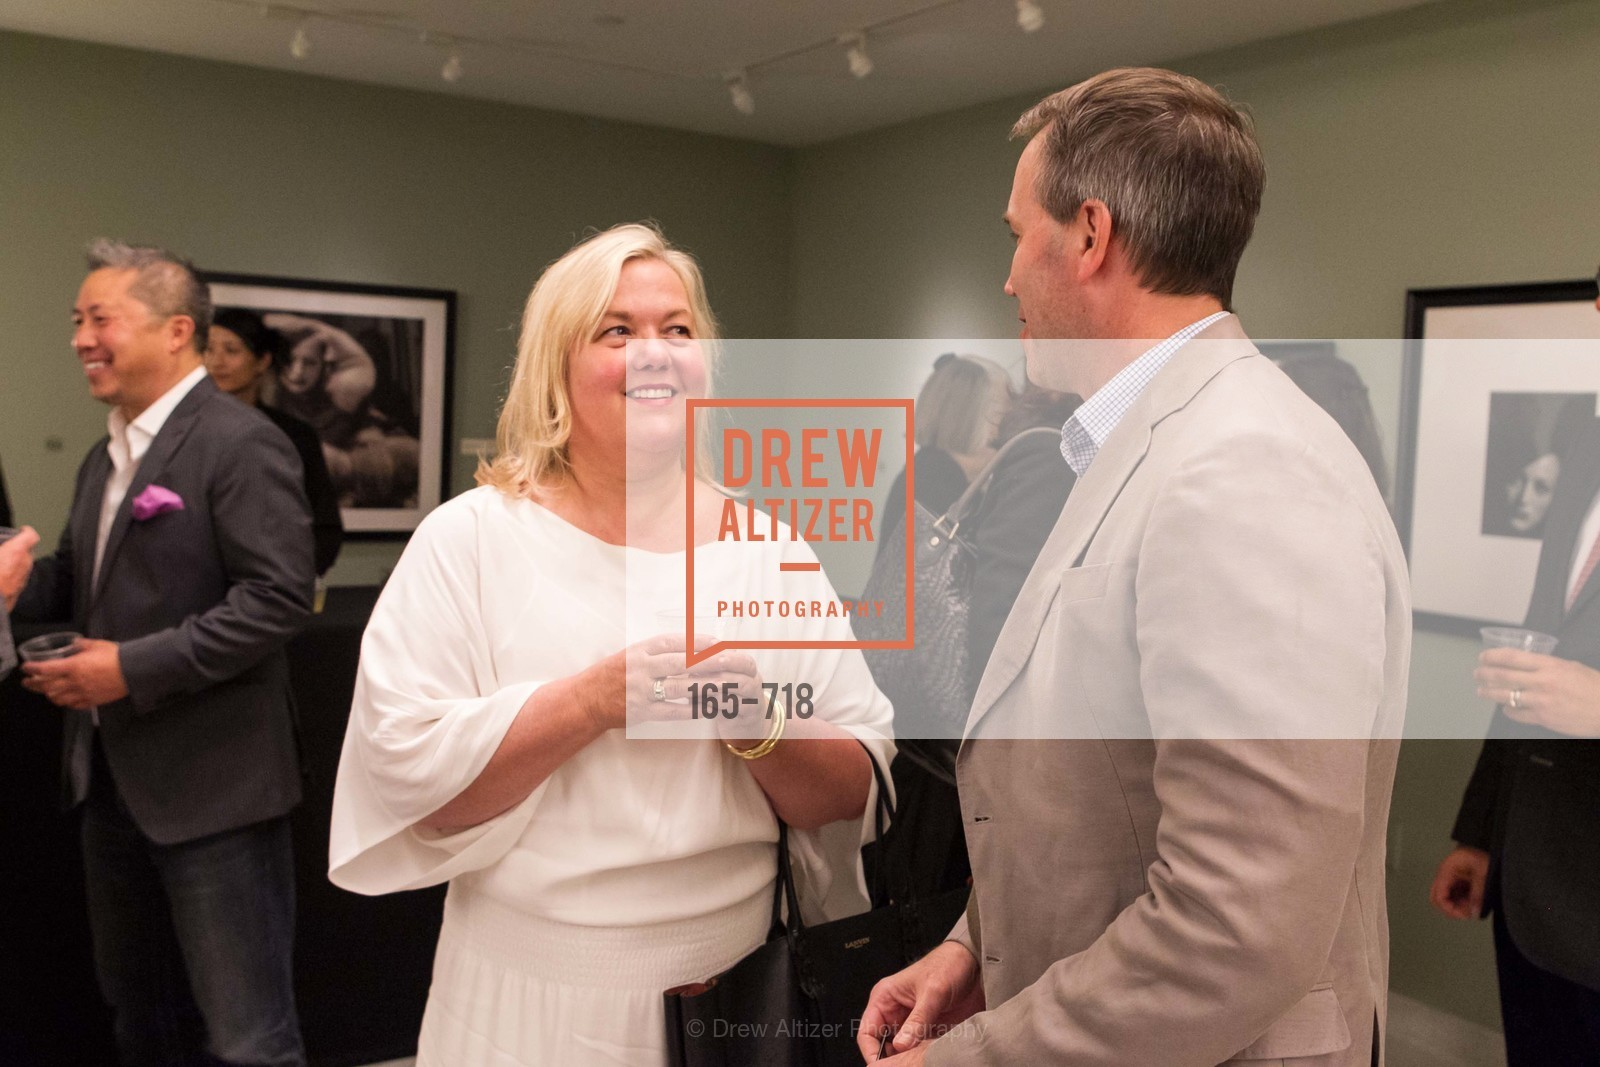 Heidi Gerpheide, Chip Zecher, ICAA Hosts NICKY HASLAM'S Lecture and Book Signing, US, May 11th, 2015,Drew Altizer, Drew Altizer Photography, full-service agency, private events, San Francisco photographer, photographer california